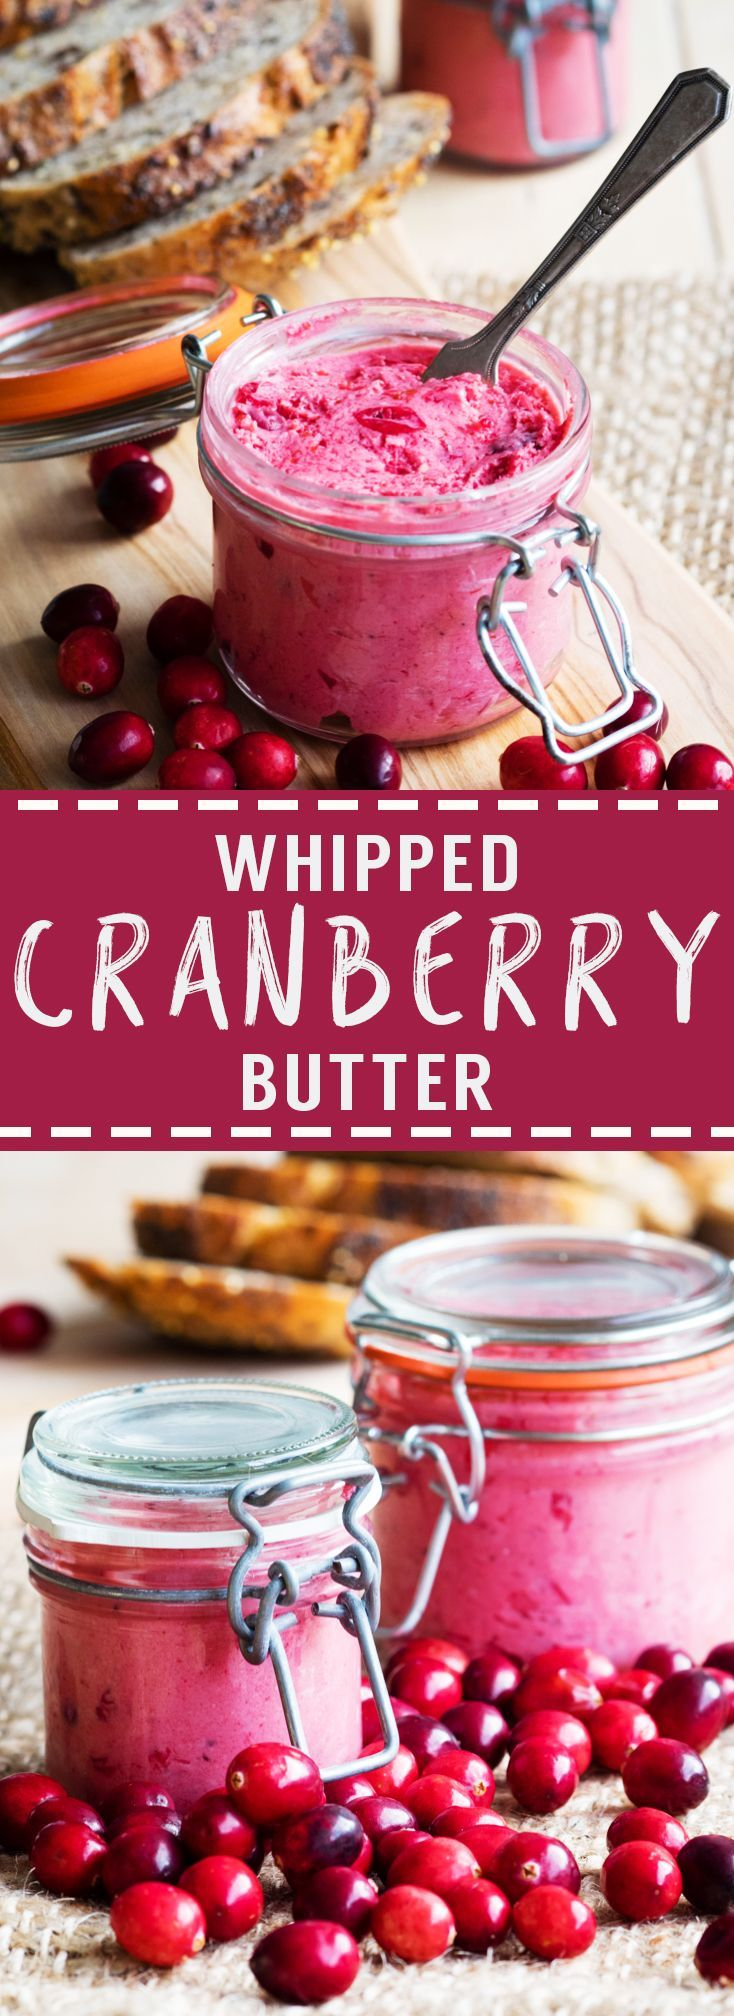 Whipped Cranberry Butter (GF) | The Worktop -- This tart and sweet Whipped Cranberry Butter is a simple condiment that adds a punch of flavor. Easy to make and a great way to use up leftover cranberries.